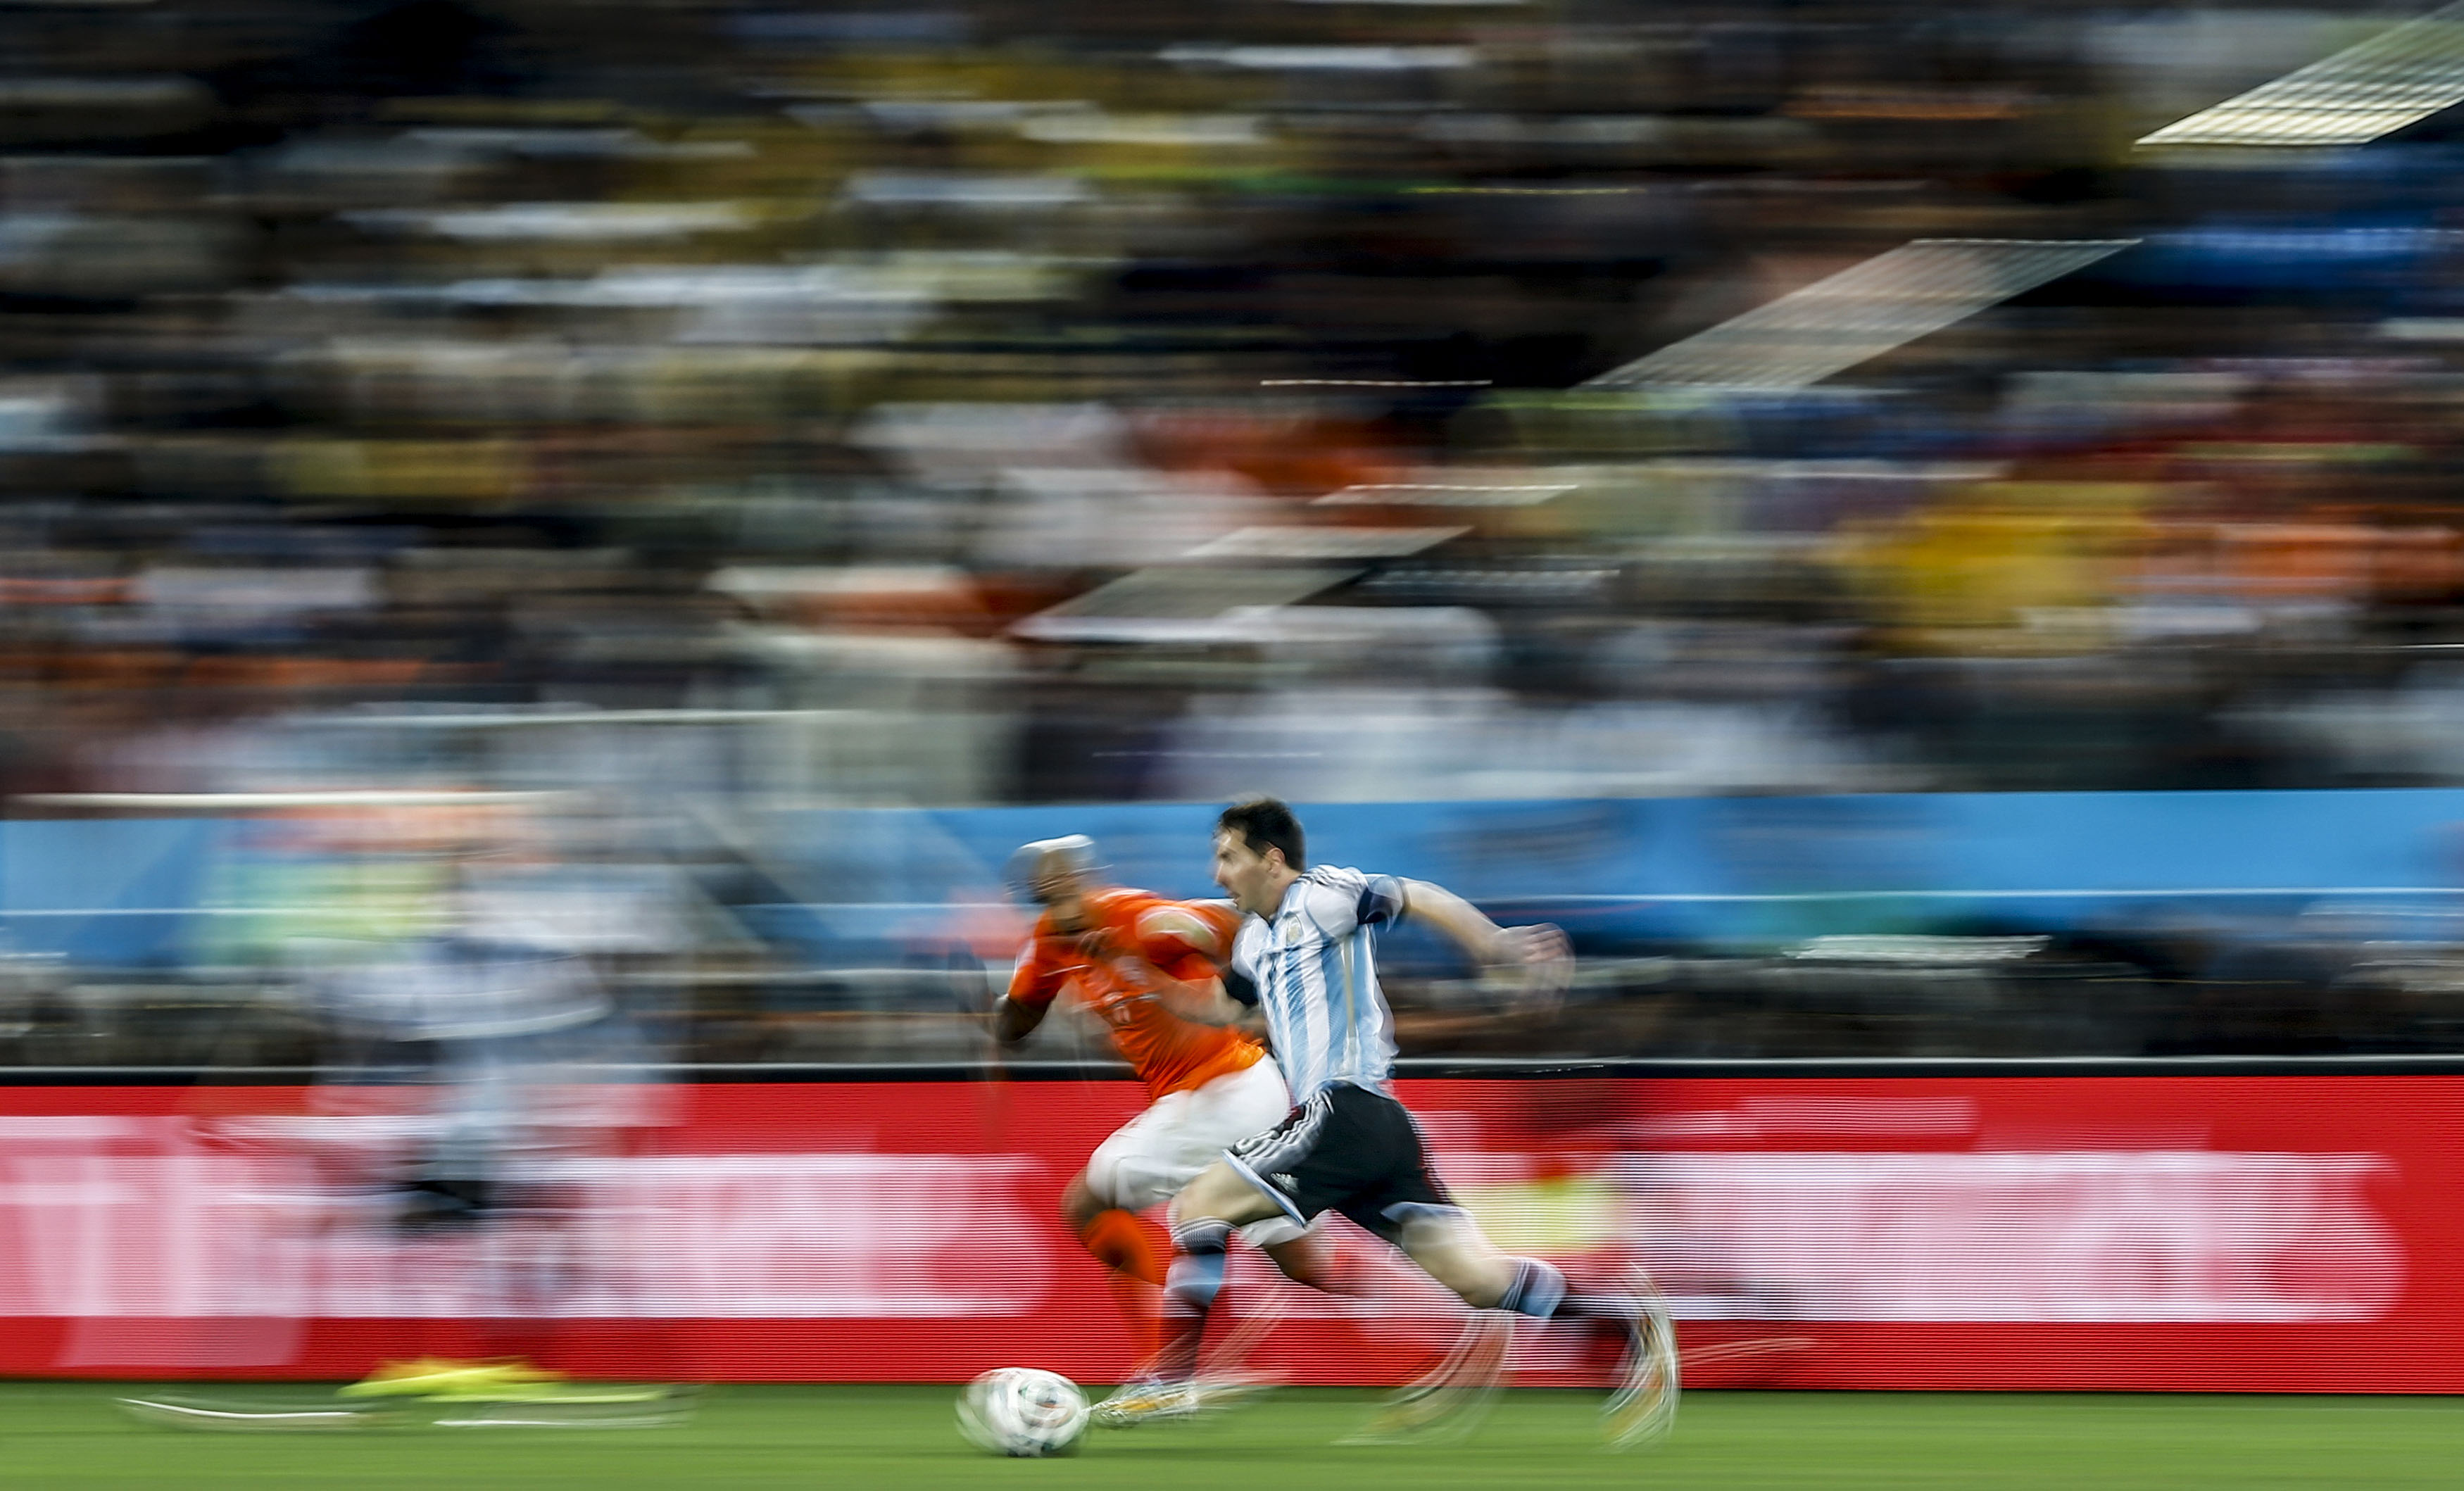 de Jong of the Netherlands fights for the ball with Argentina's Messi during their 2014 World Cup semi-finals at the Corinthians arena in Sao Paulo